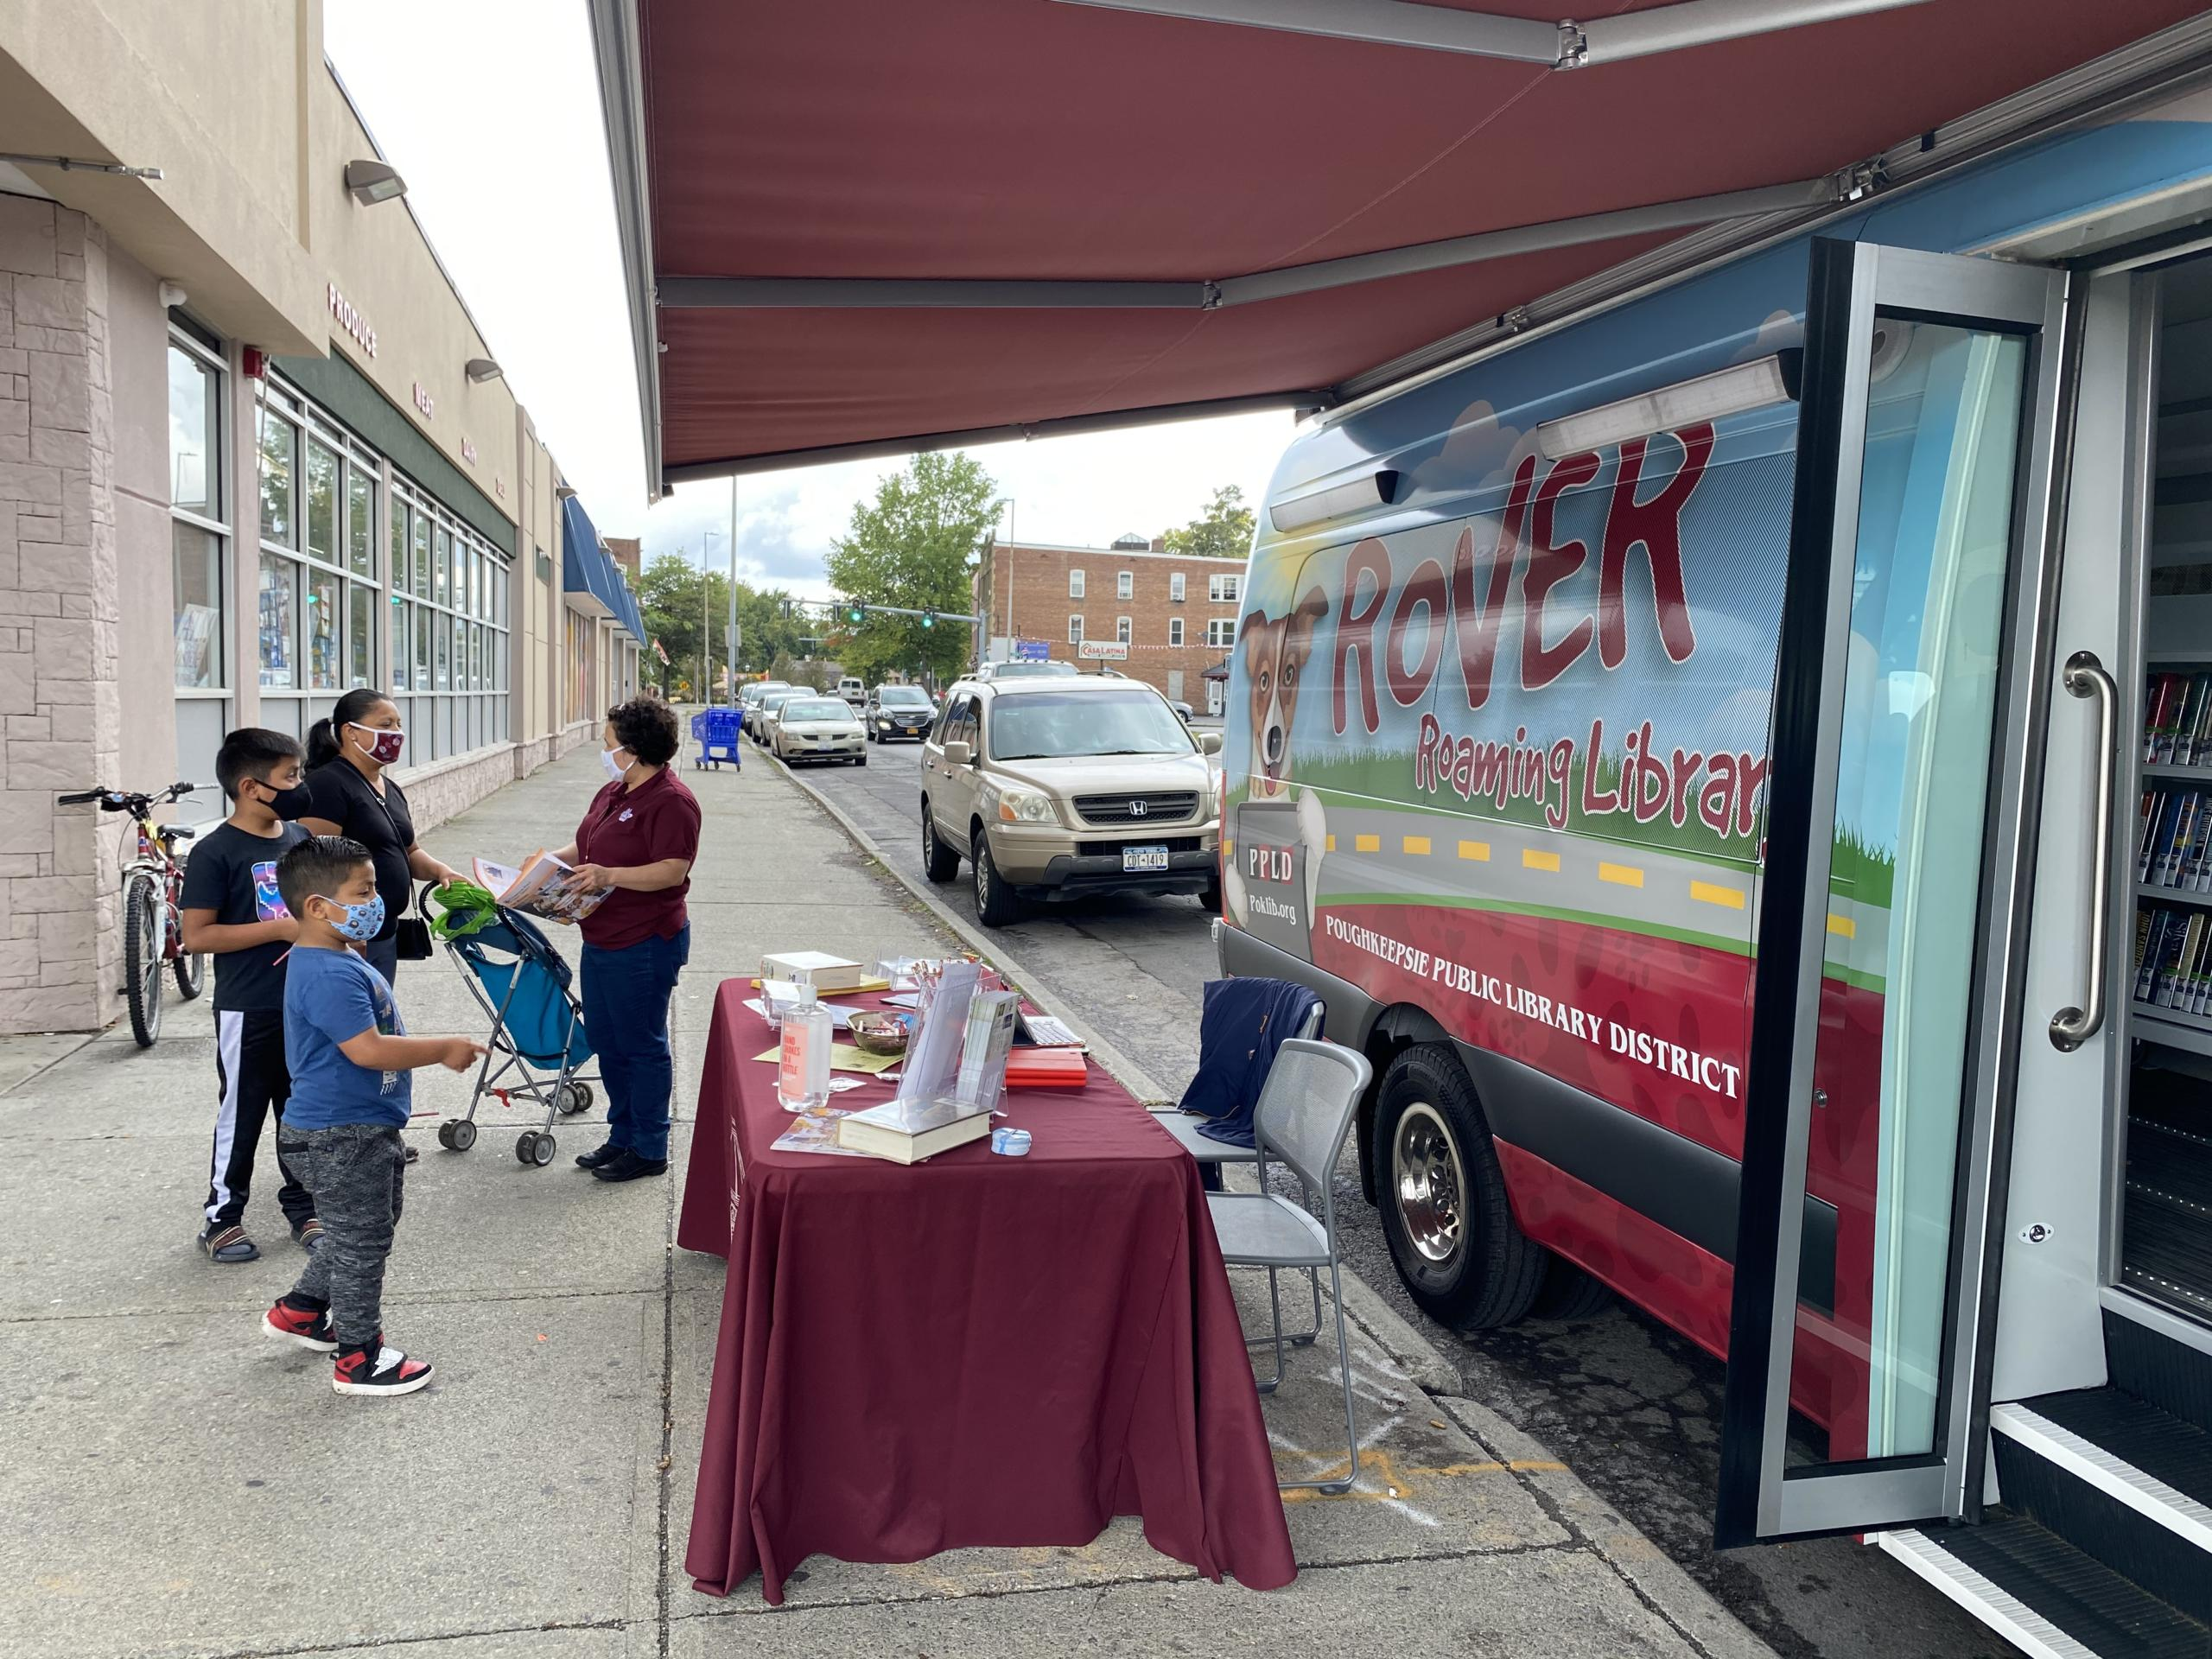 Photo #3 of Rover bookmobile at Fresh Market.